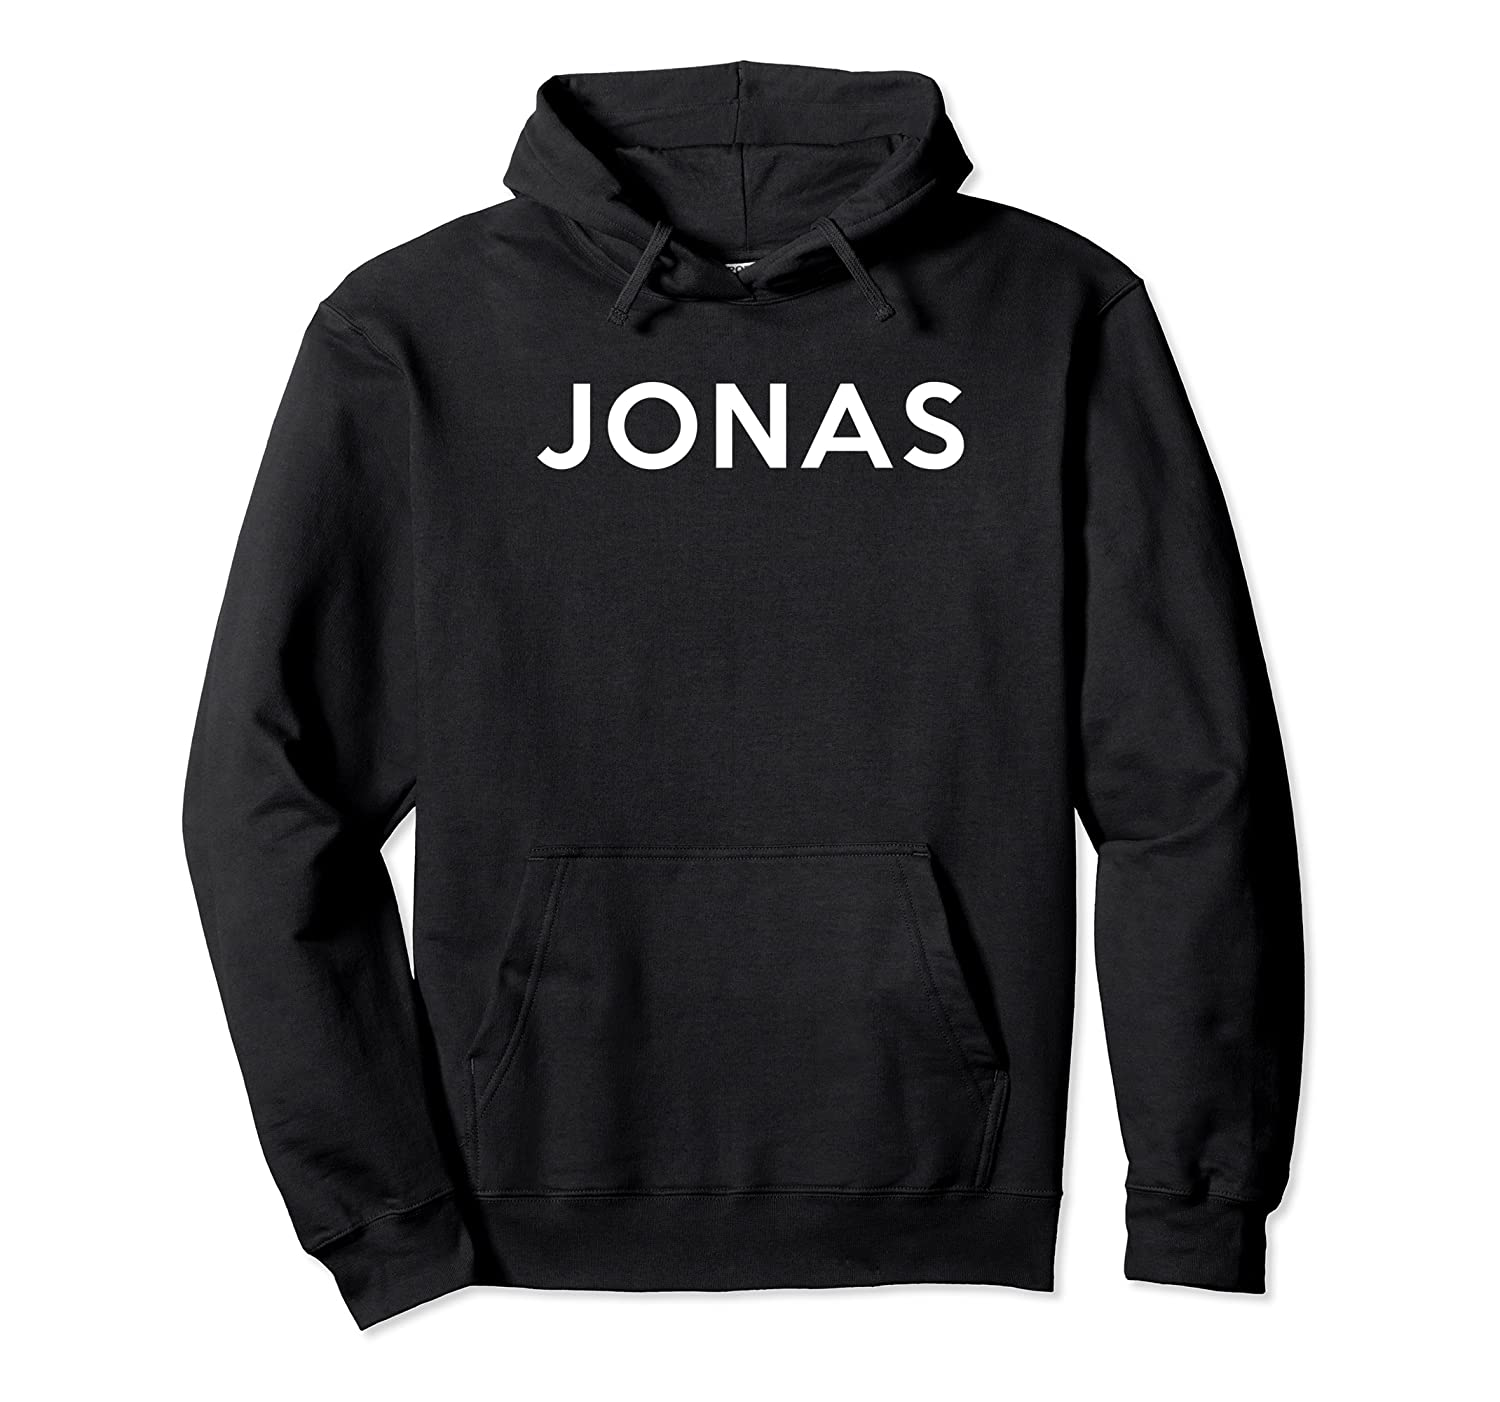 Jonas First Given Name Pride Funny The Original Shirts Unisex Pullover Hoodie